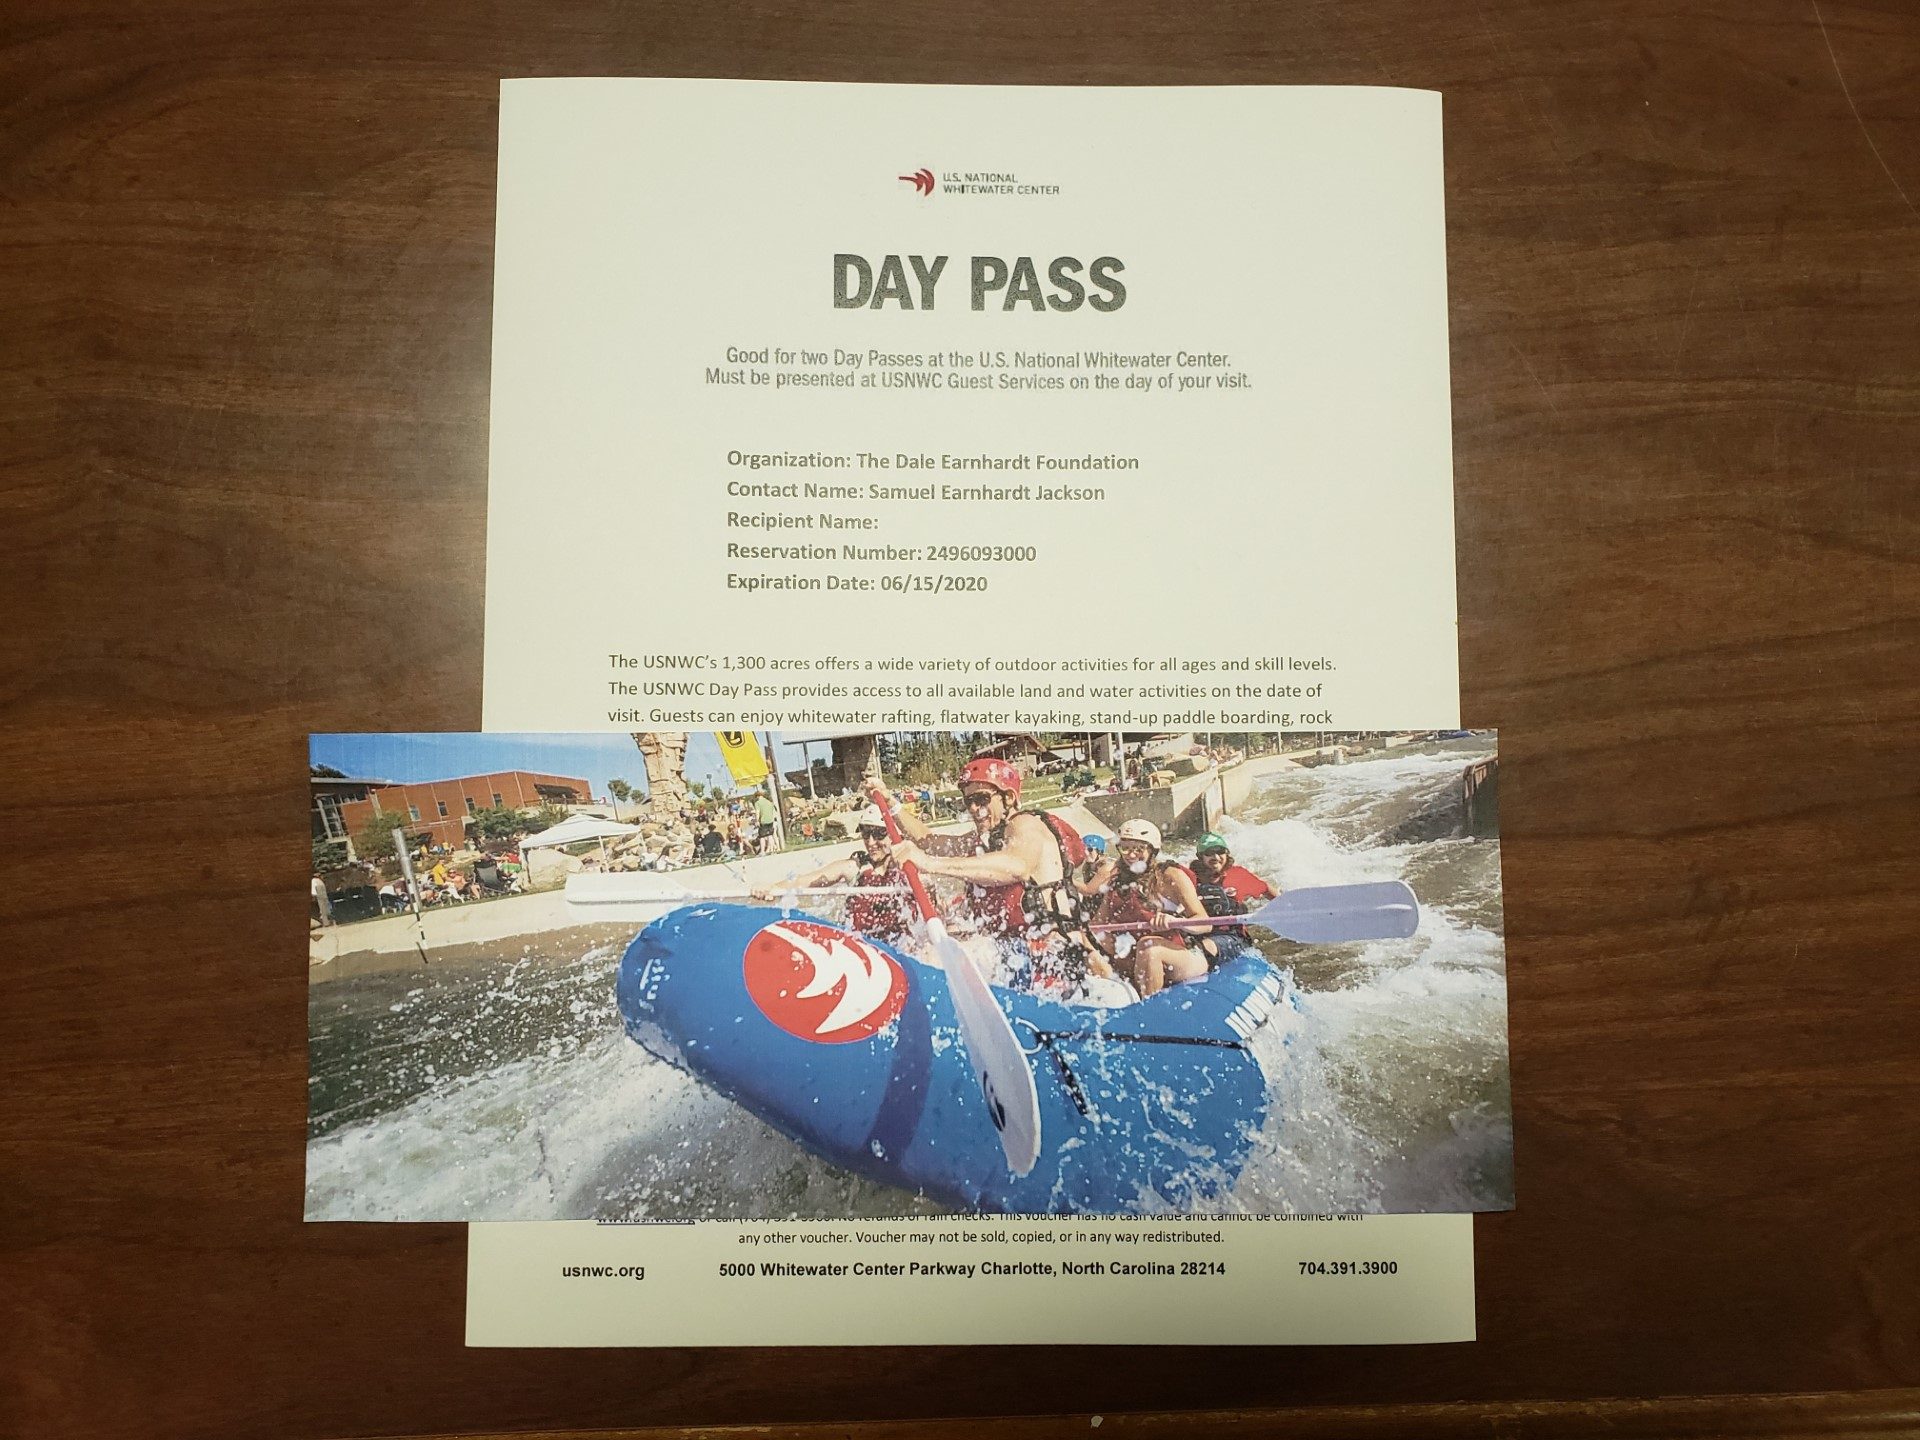 2 US National Whitewater Center Tickets